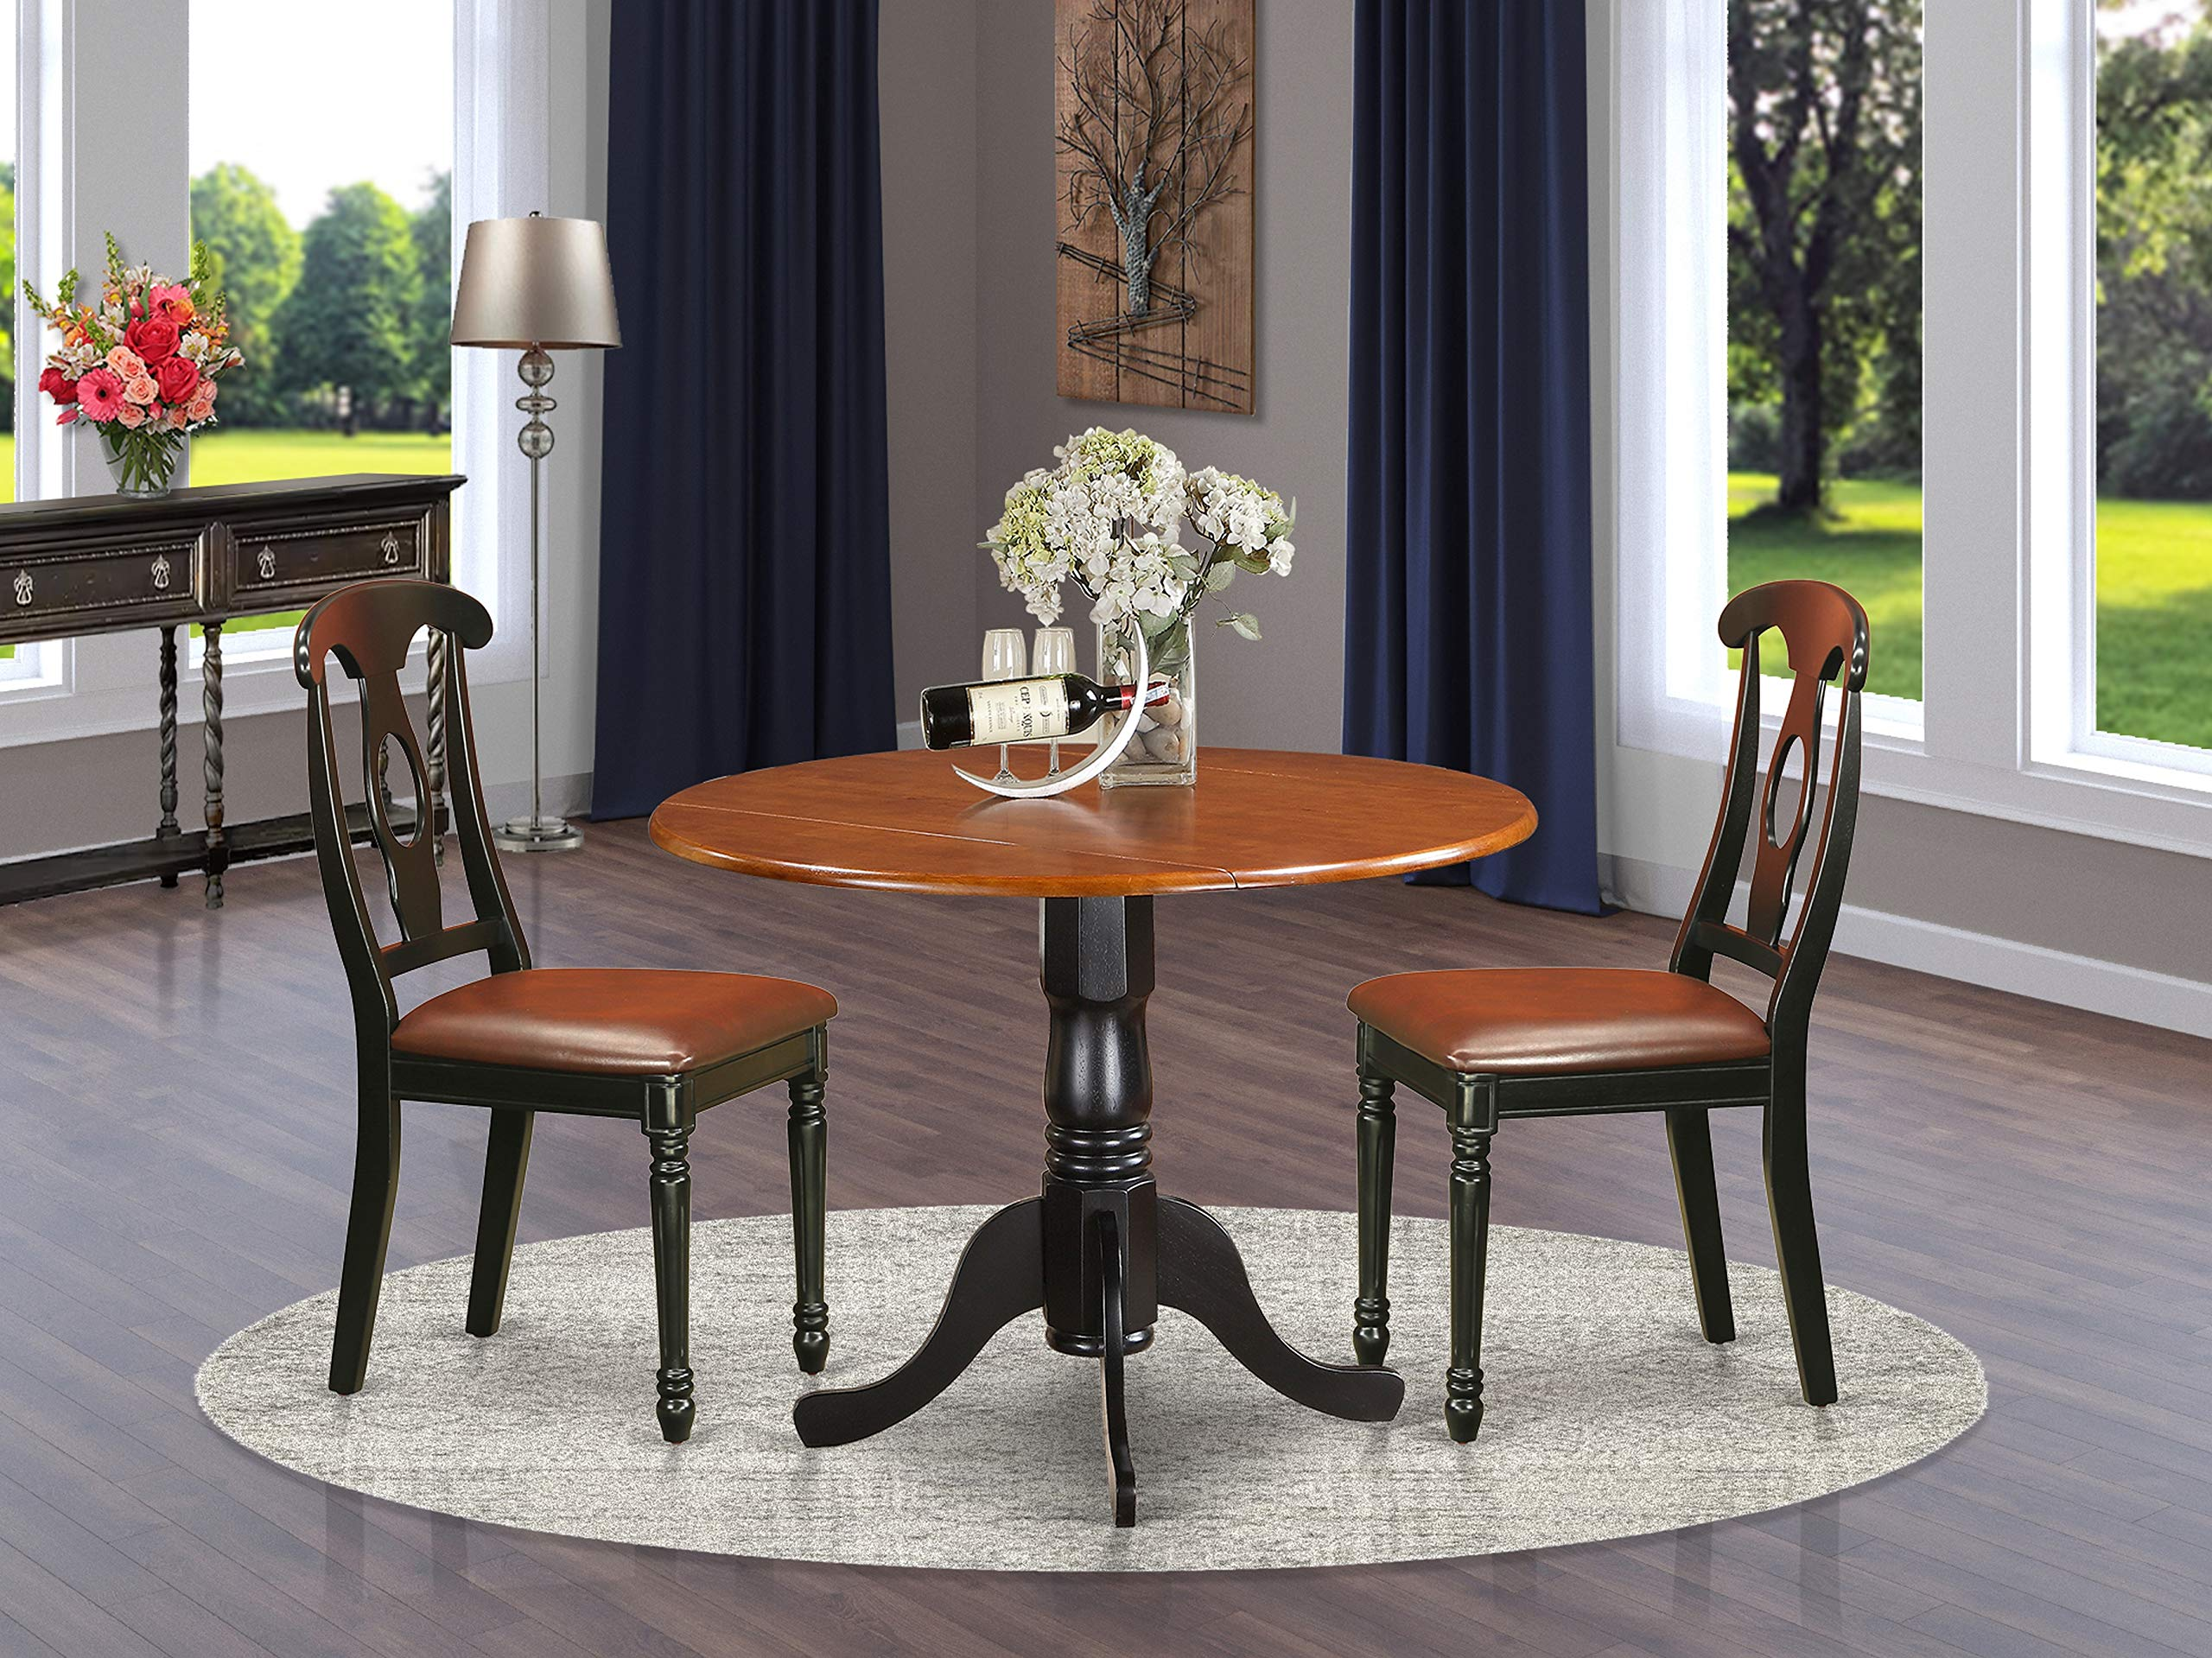 10 PC Kitchen Table set-Dining Table and 10 Kitchen Chairs